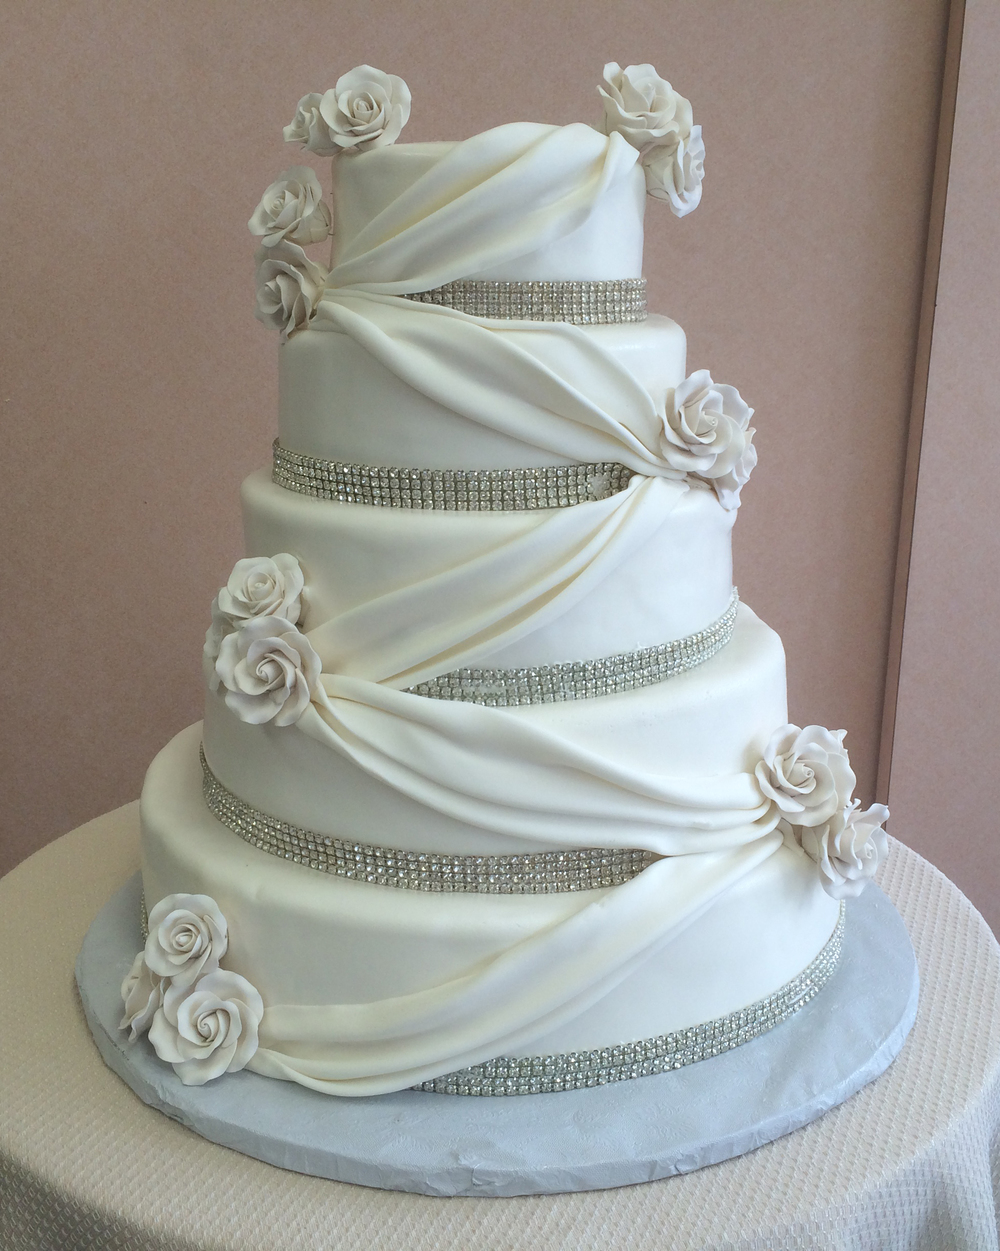 Contemporary wedding cakes sal doms pastry shop 46 with swarovski crystals white rolled fondant roses izmirmasajfo